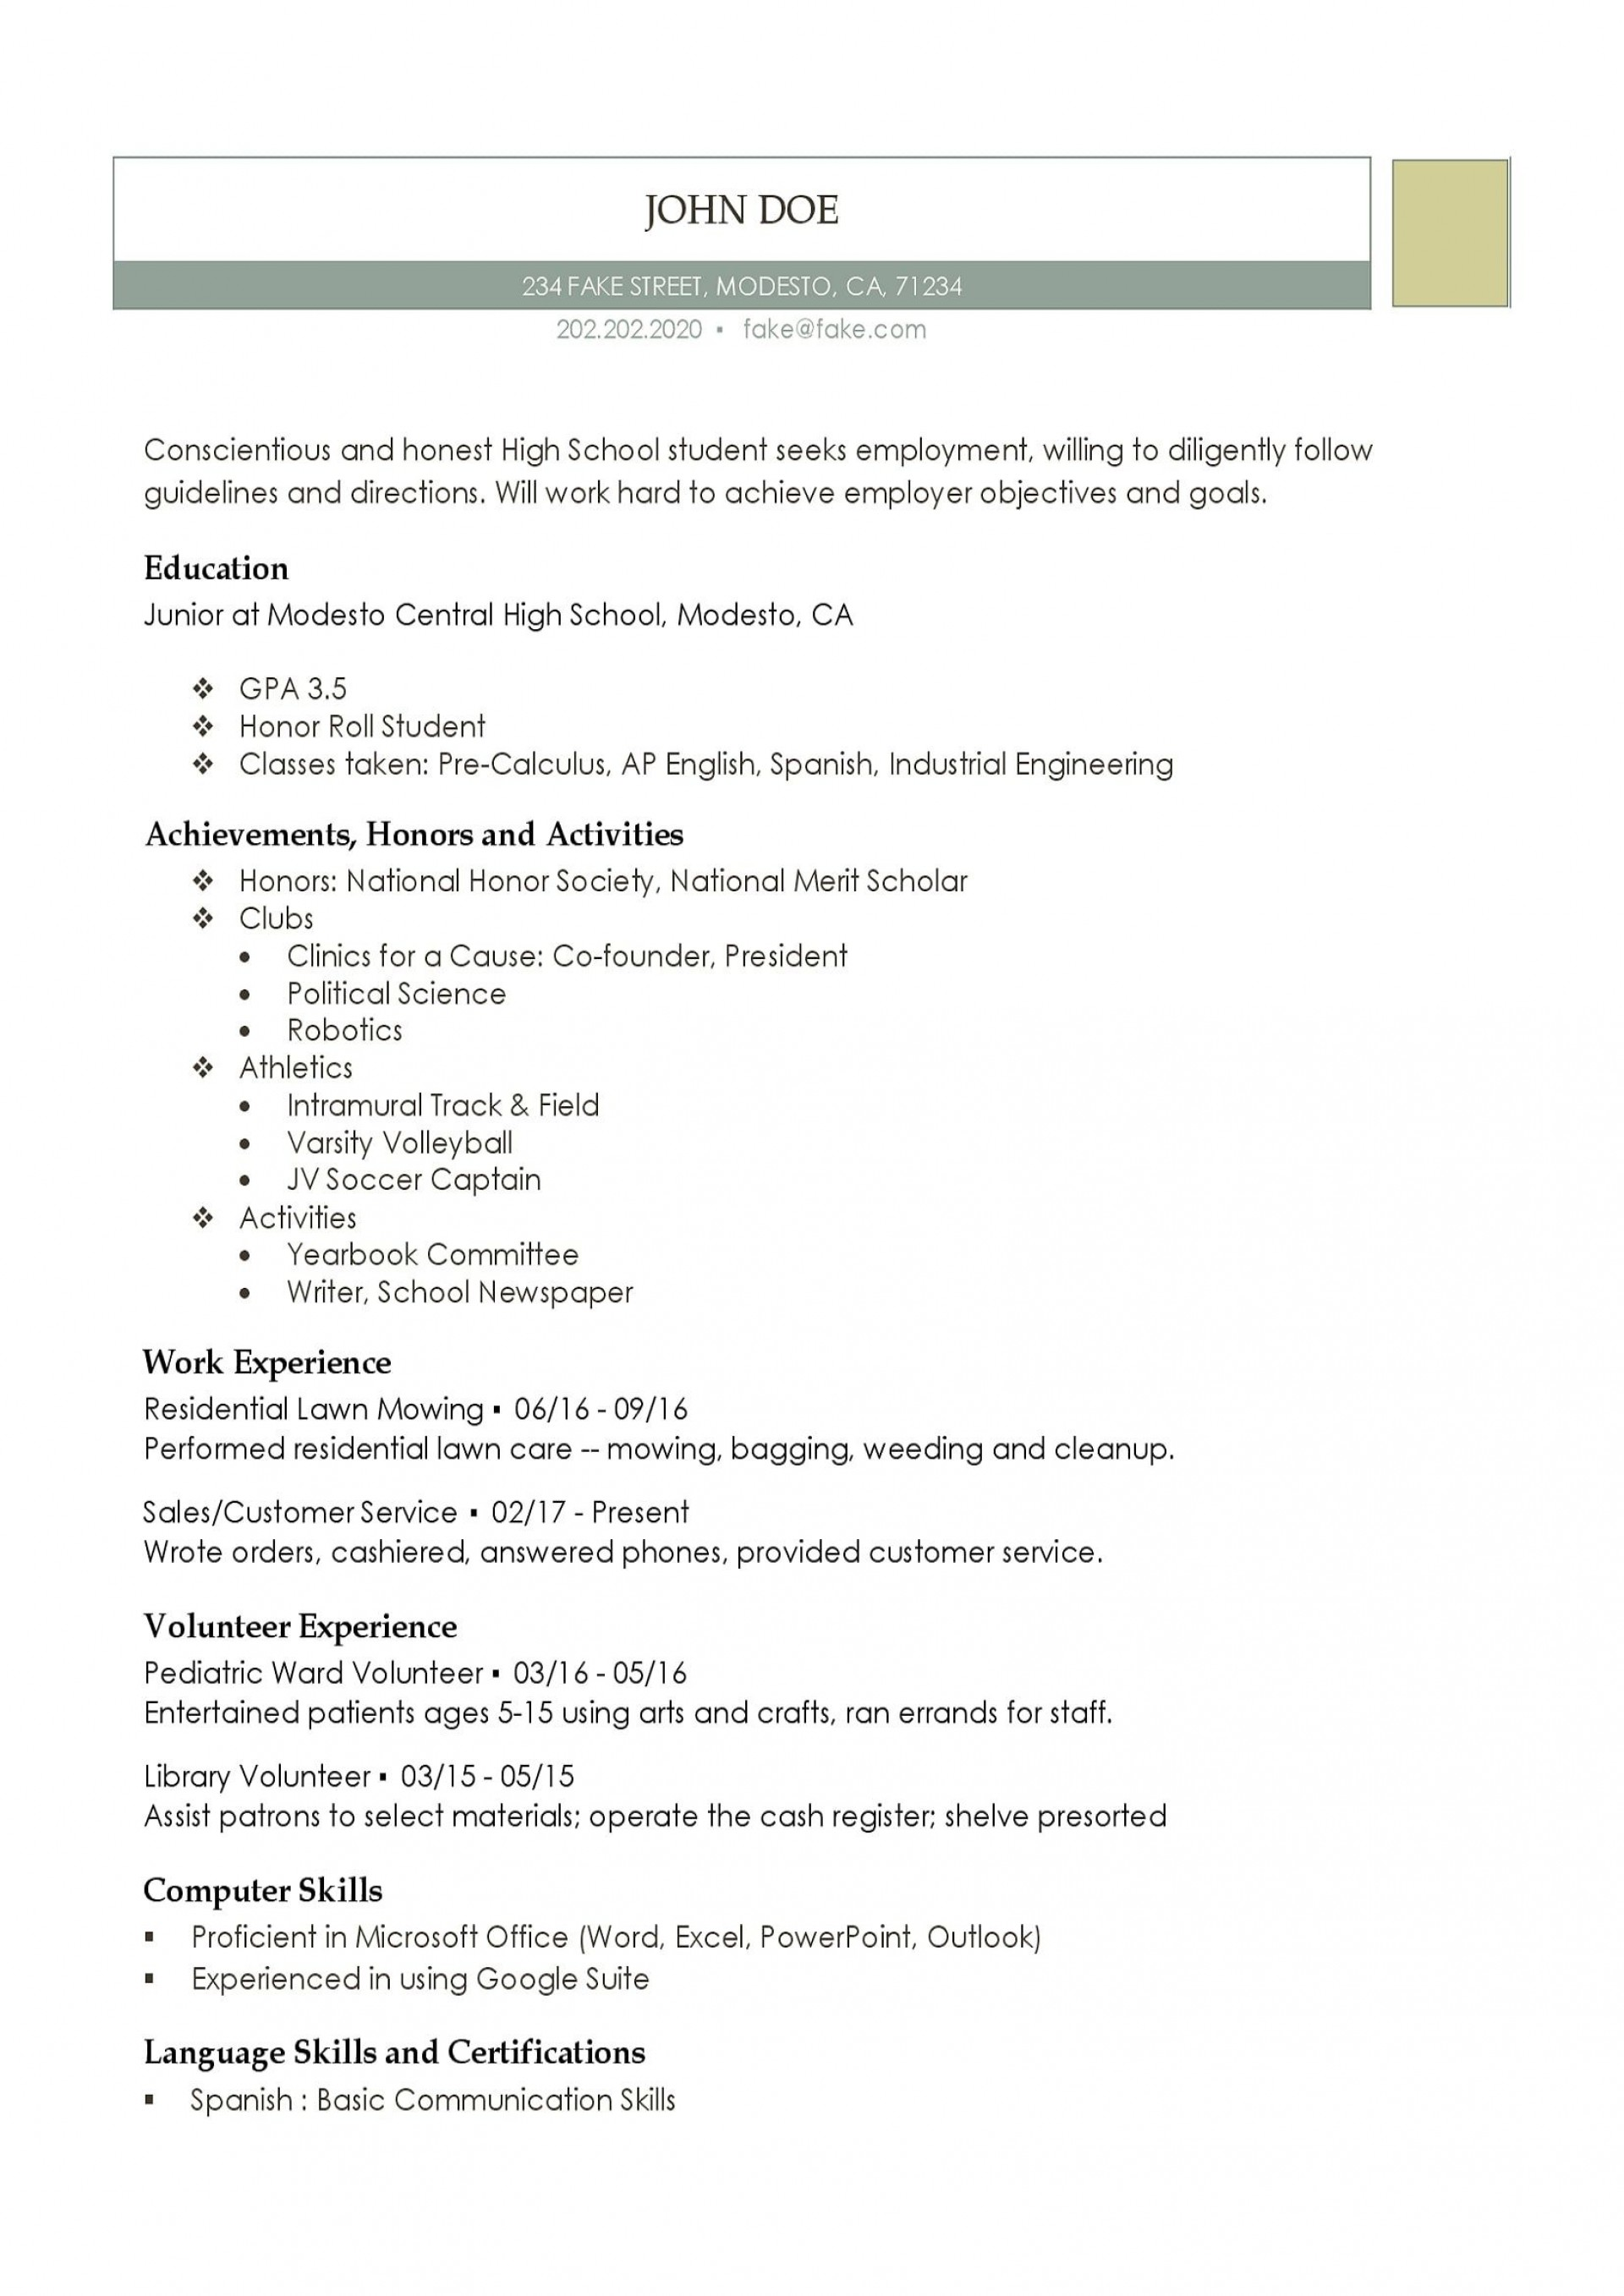 003 Unusual Basic Student Resume Template Picture  Templates High School Google Doc1920